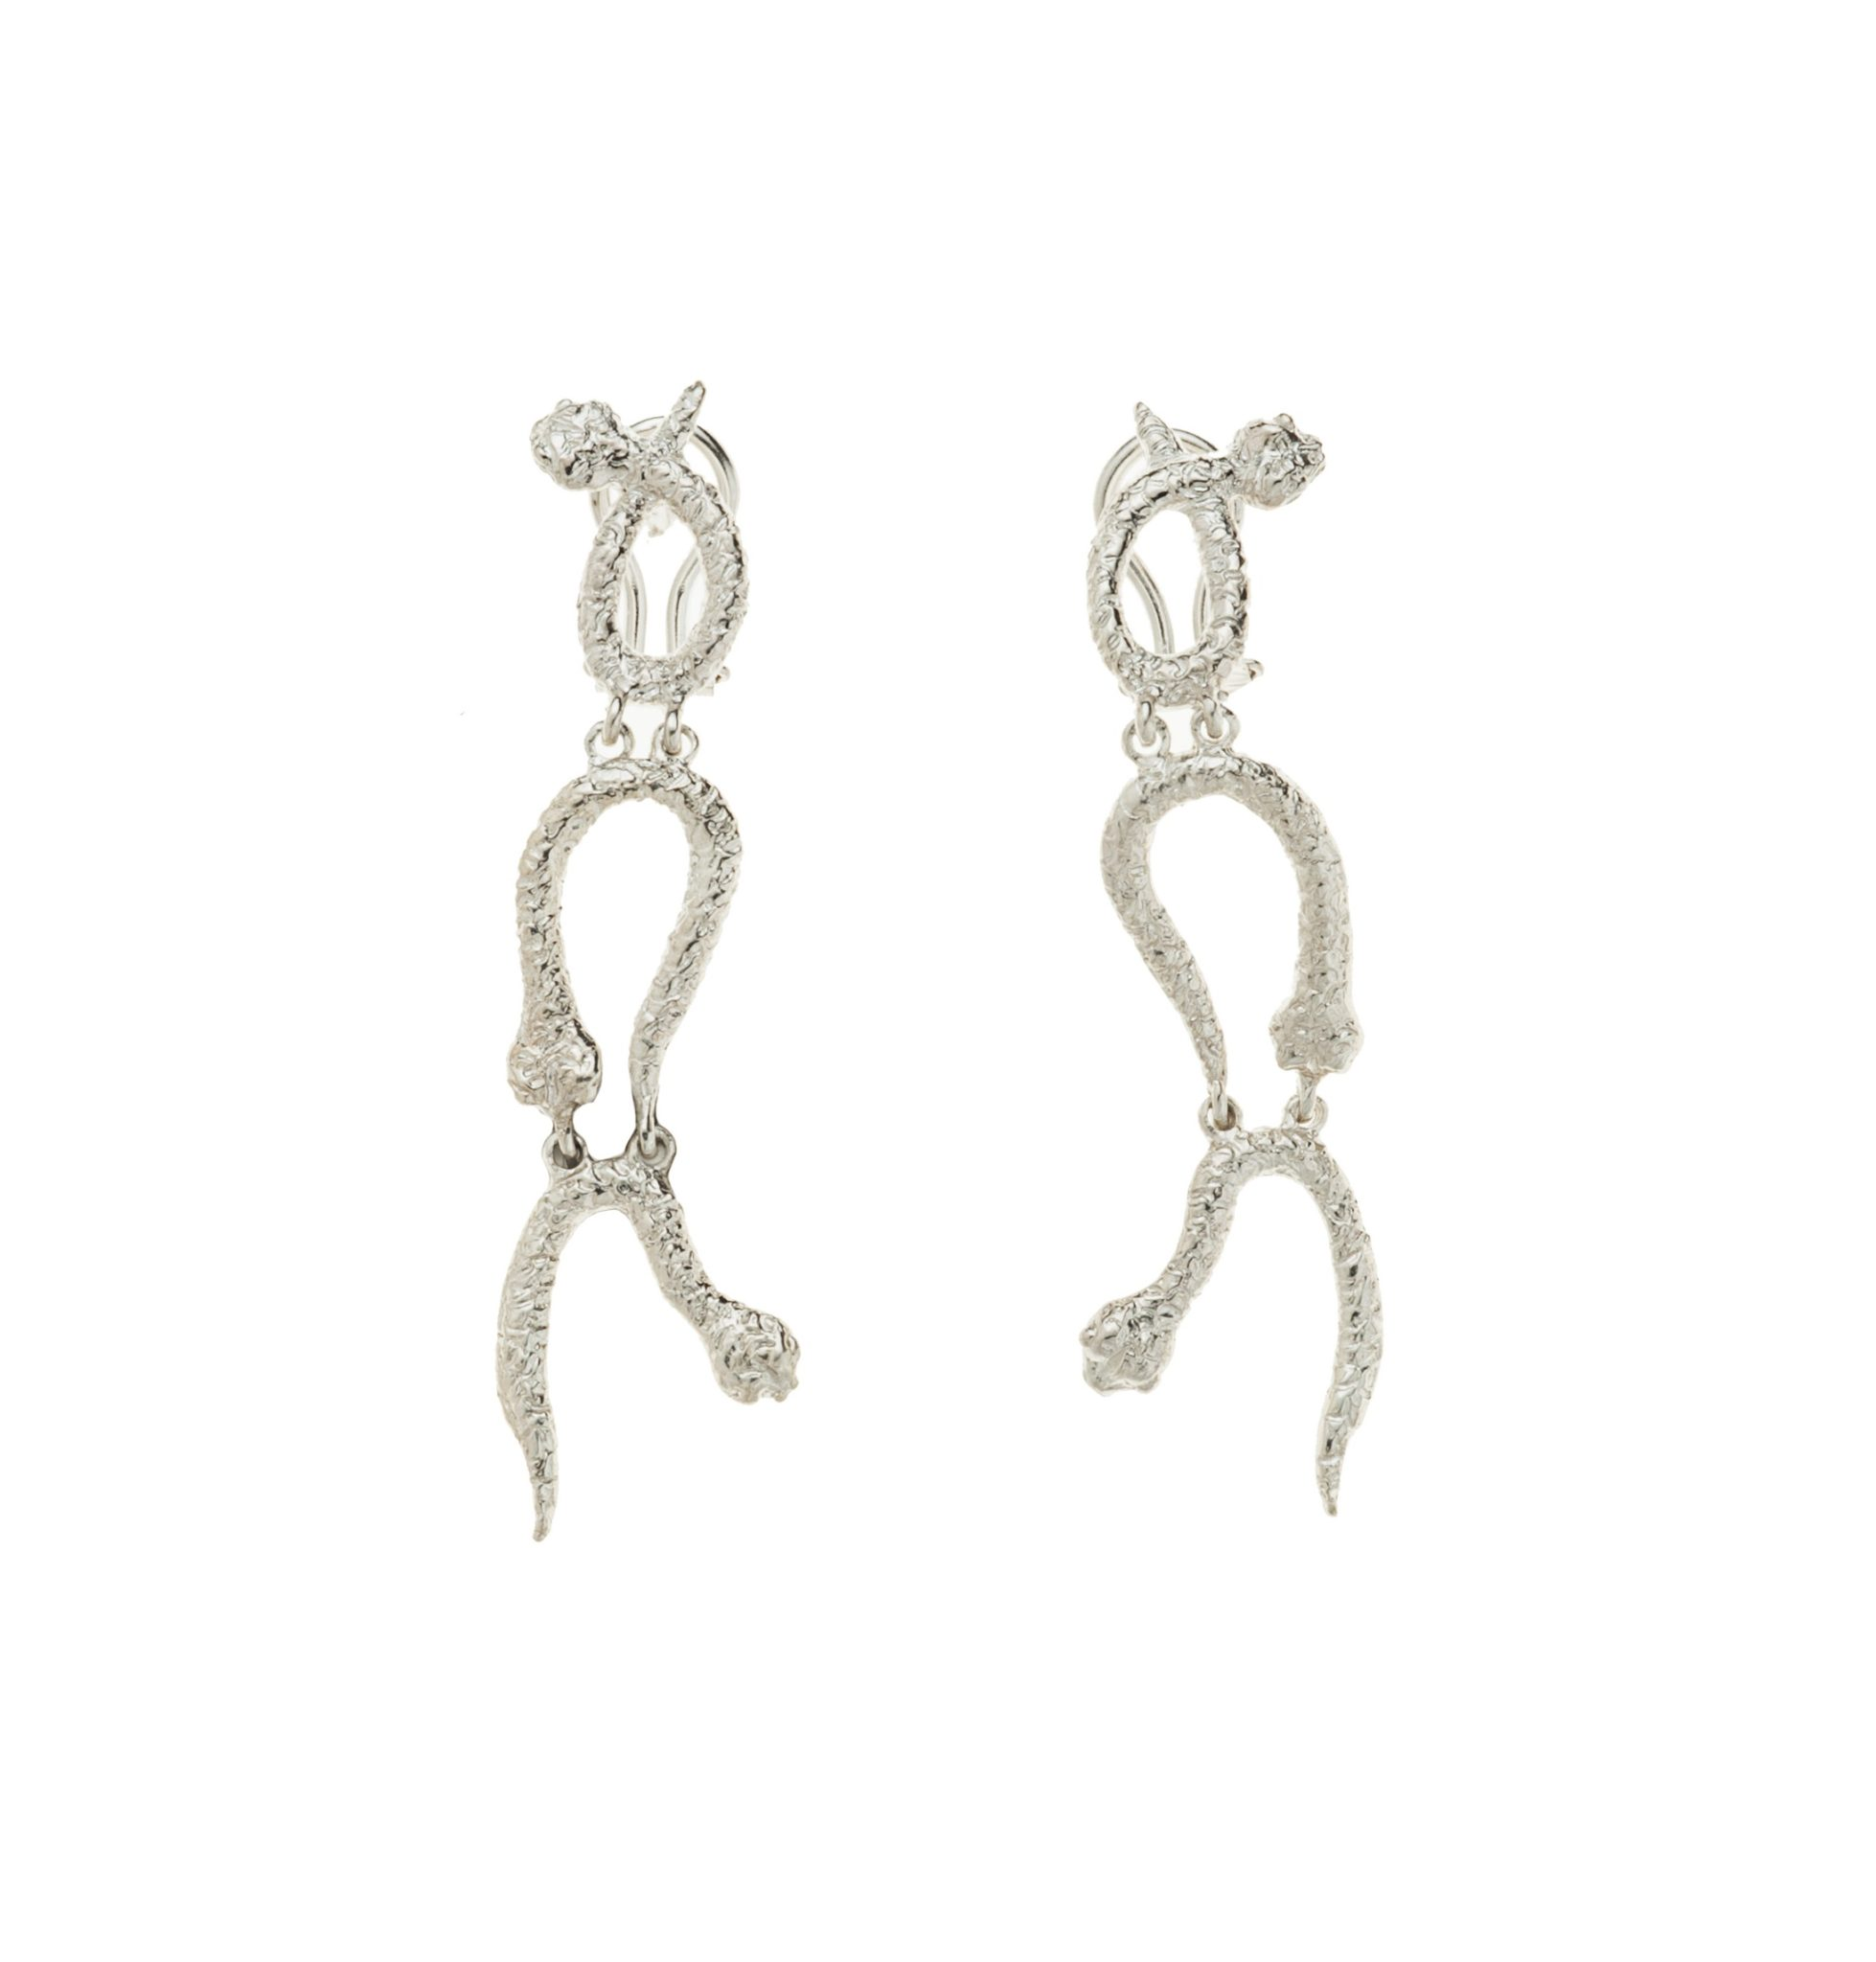 3 curved snakes silver earrings